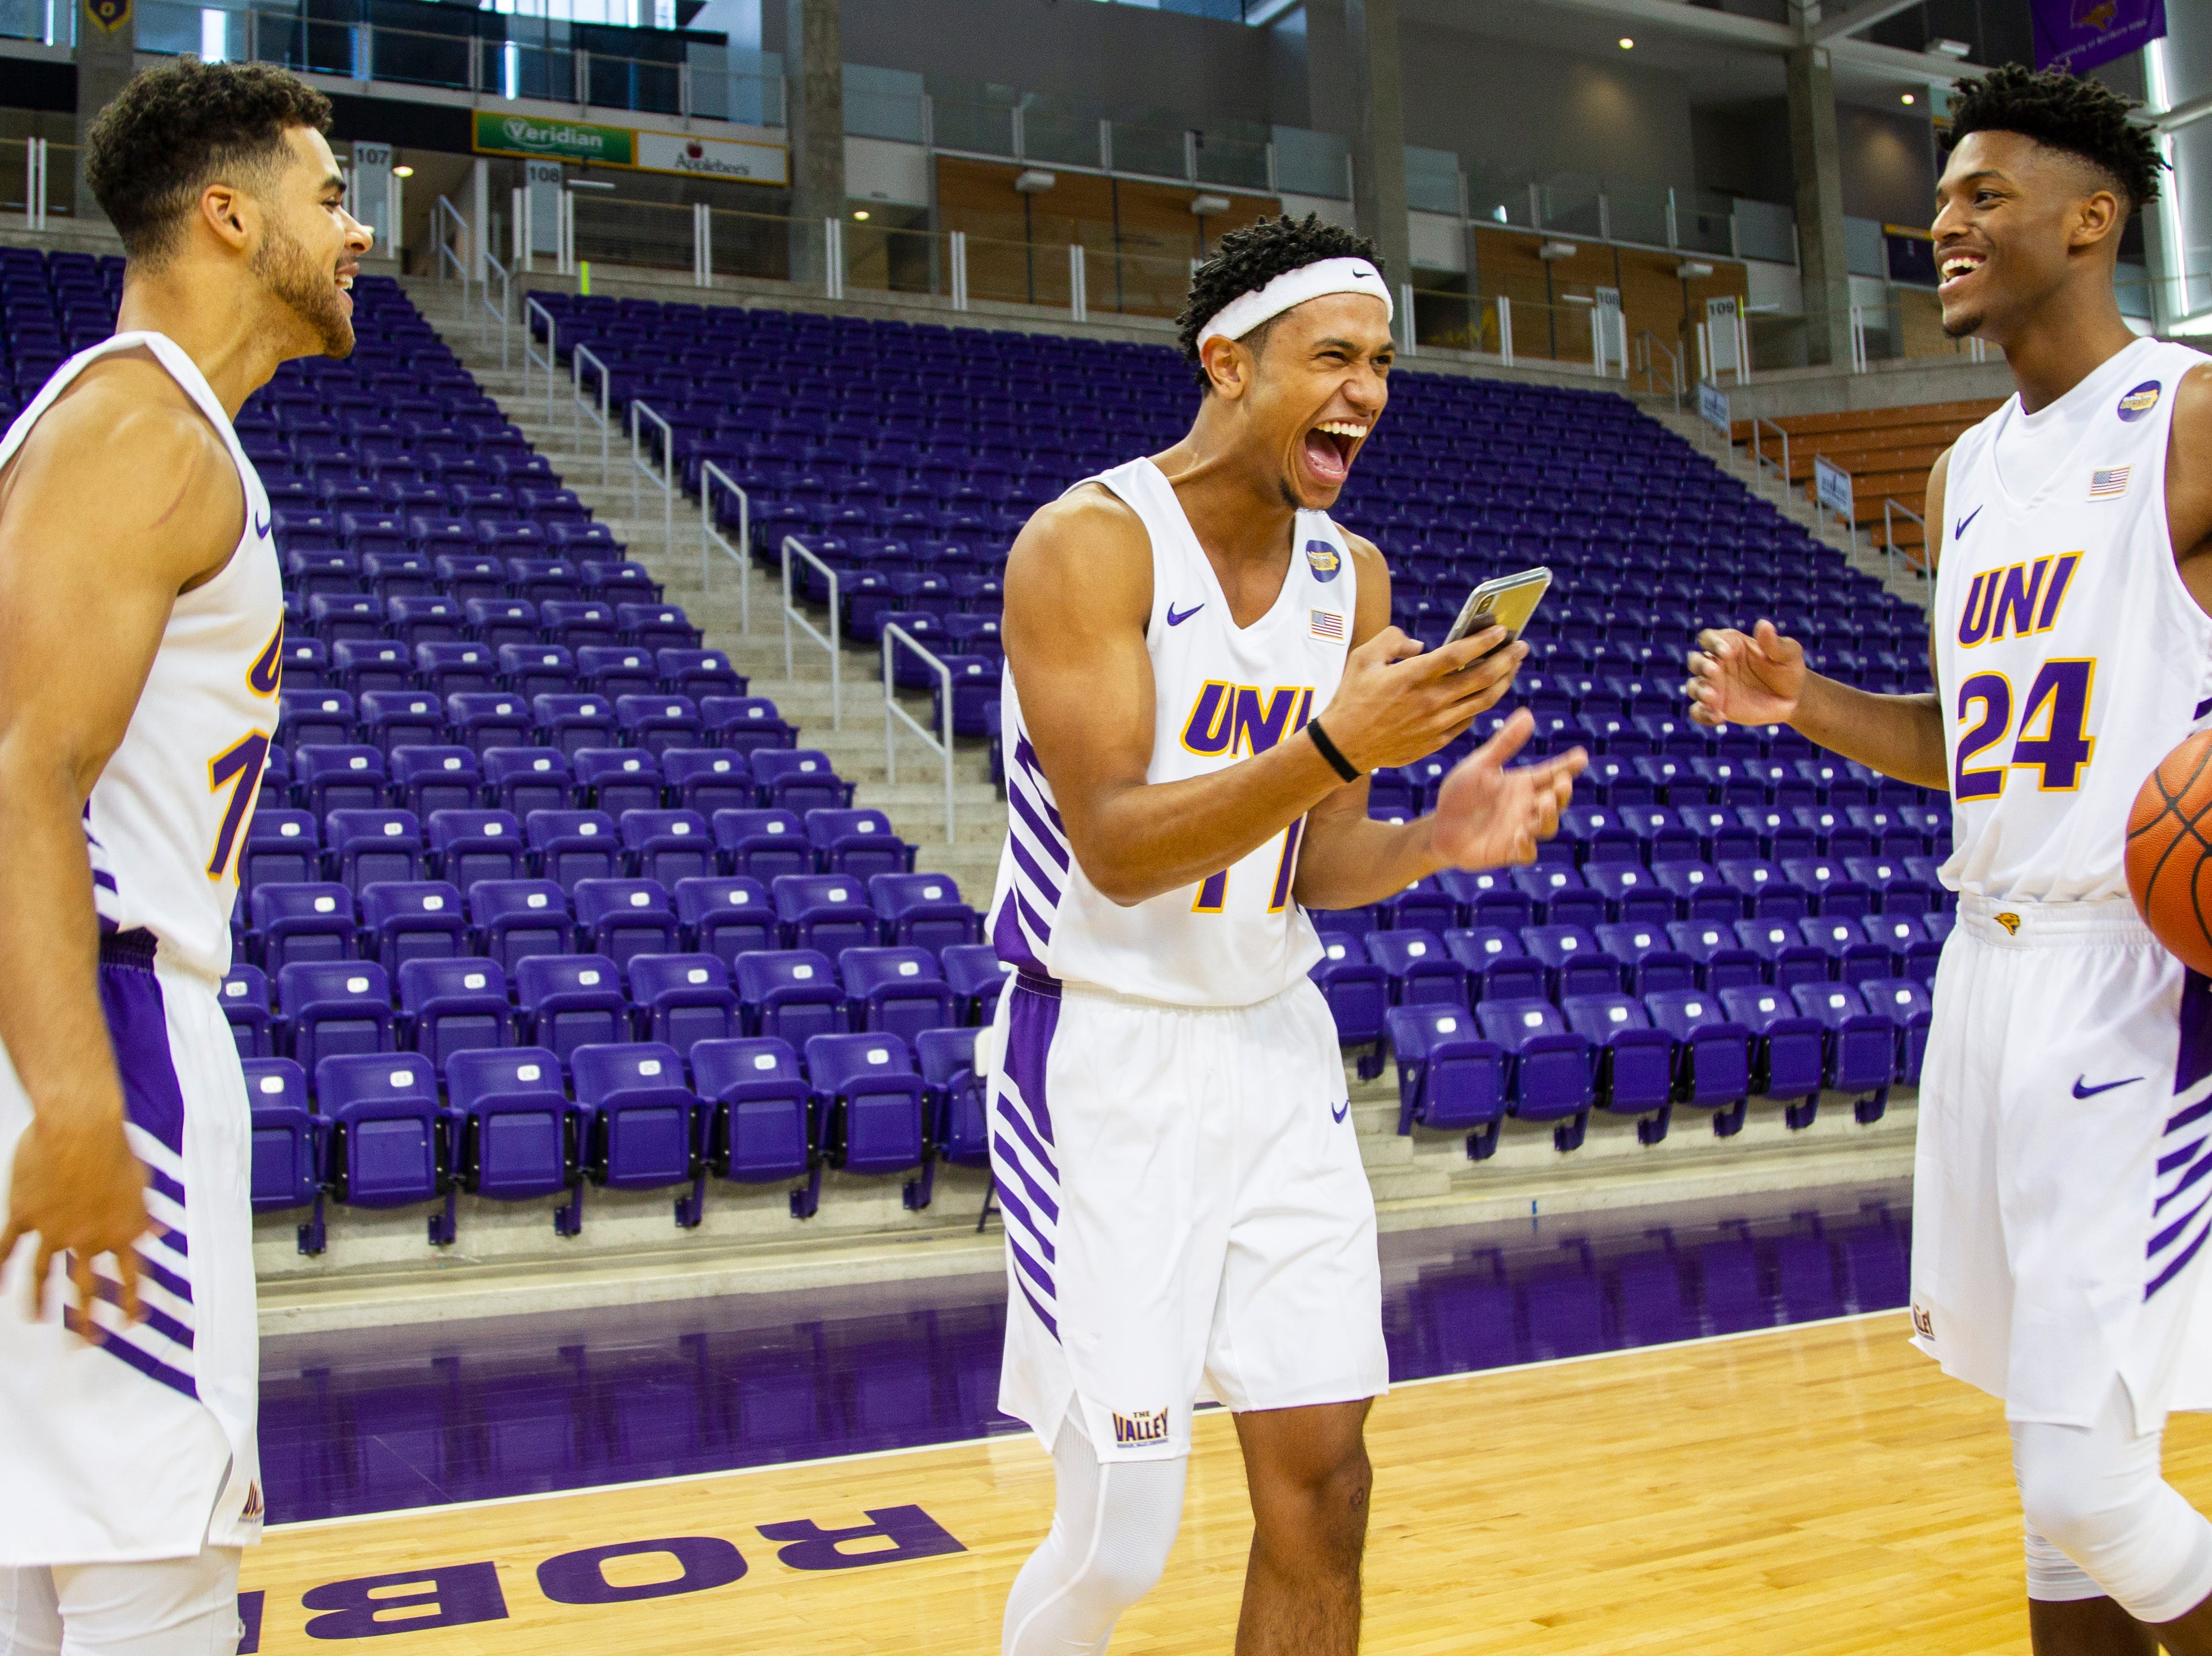 Northern Iowa guards Miles Wentzien (10) Trae Berhow (11) and Isaiah Brown (24) joke around during Panthers men's basketball media day on Wednesday, Oct. 17, 2018, at the McLeod Center in Cedar Falls.